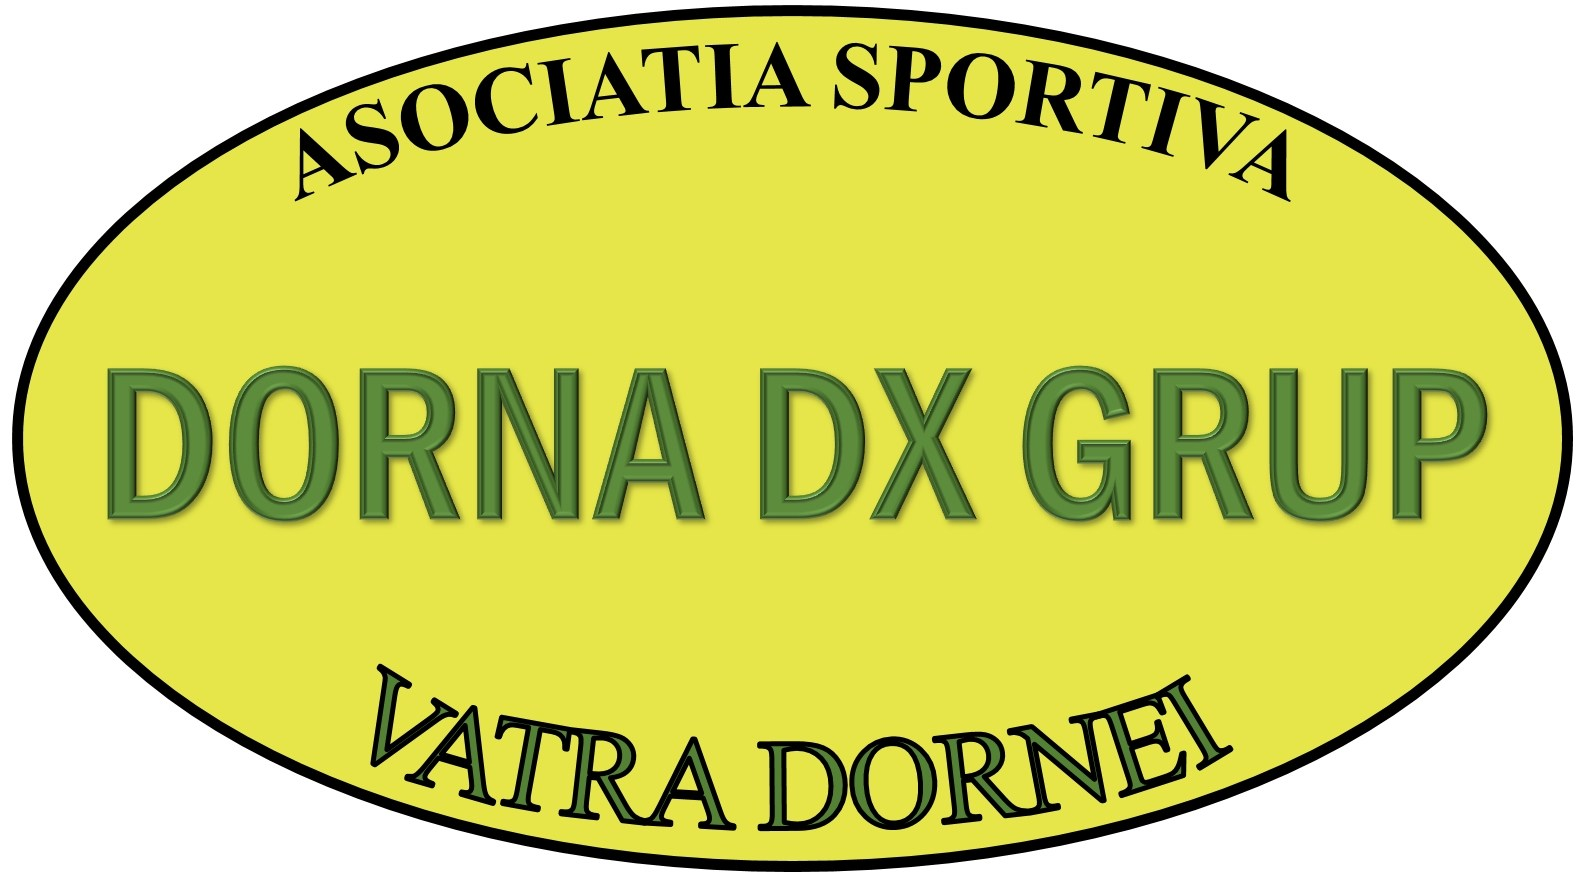 Dorna DX Group (YO)